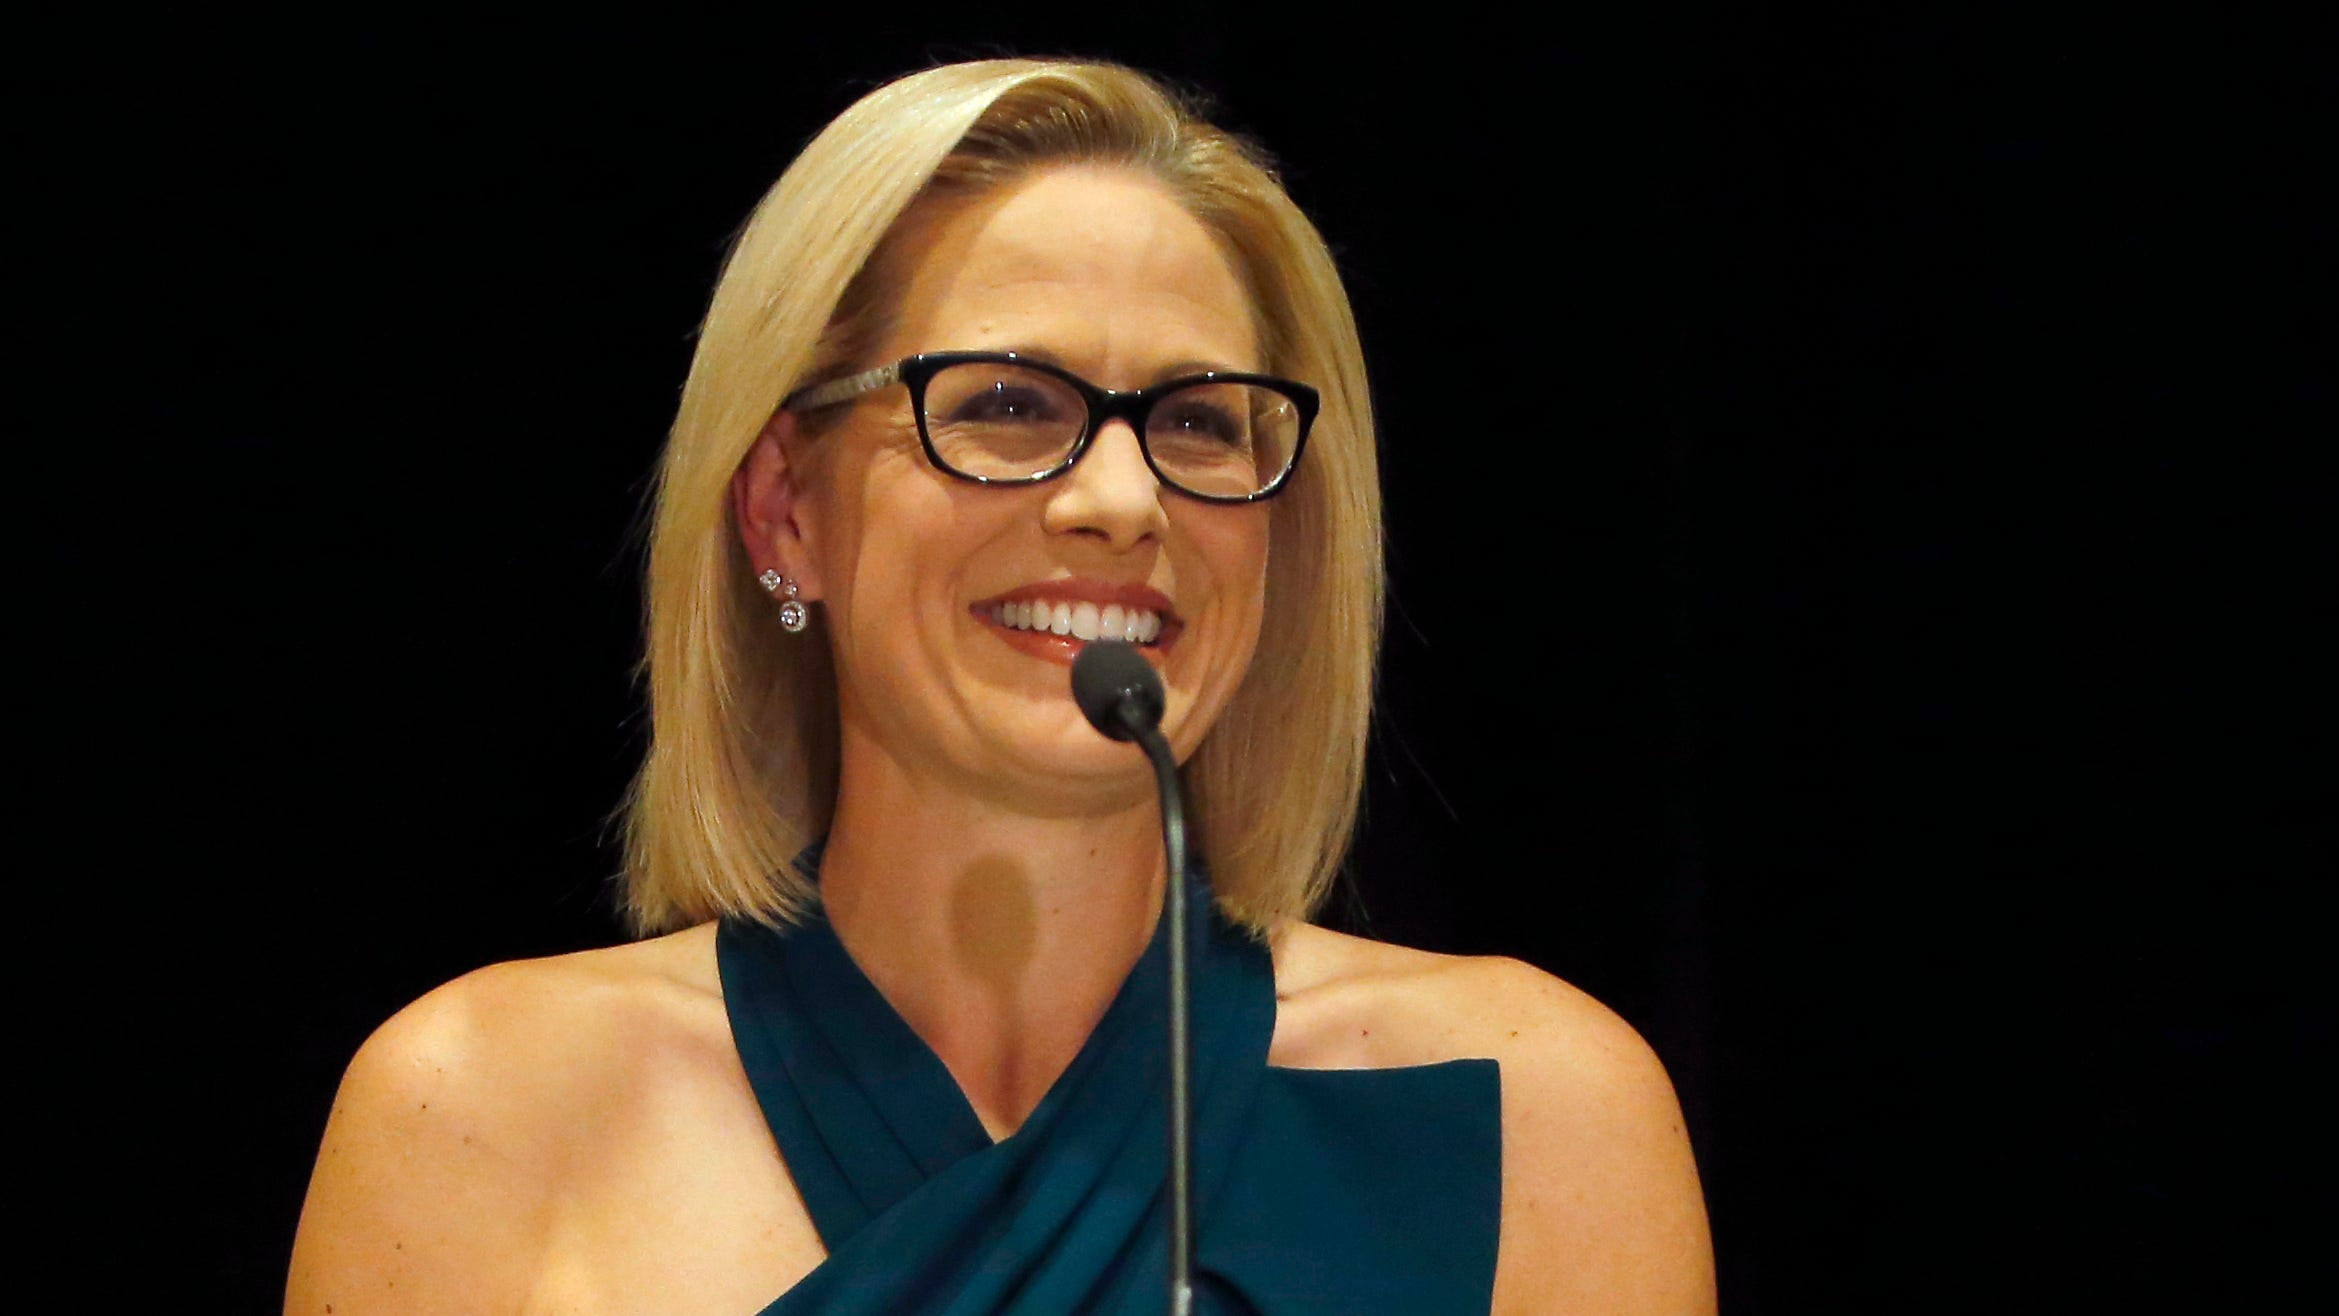 U.S. Sen.-elect Kyrsten Sinema, D-Ariz., declares victory over Republican challenger U.S. Rep. Martha McSally, Nov. 12, 2018, in Scottsdale, Ariz.